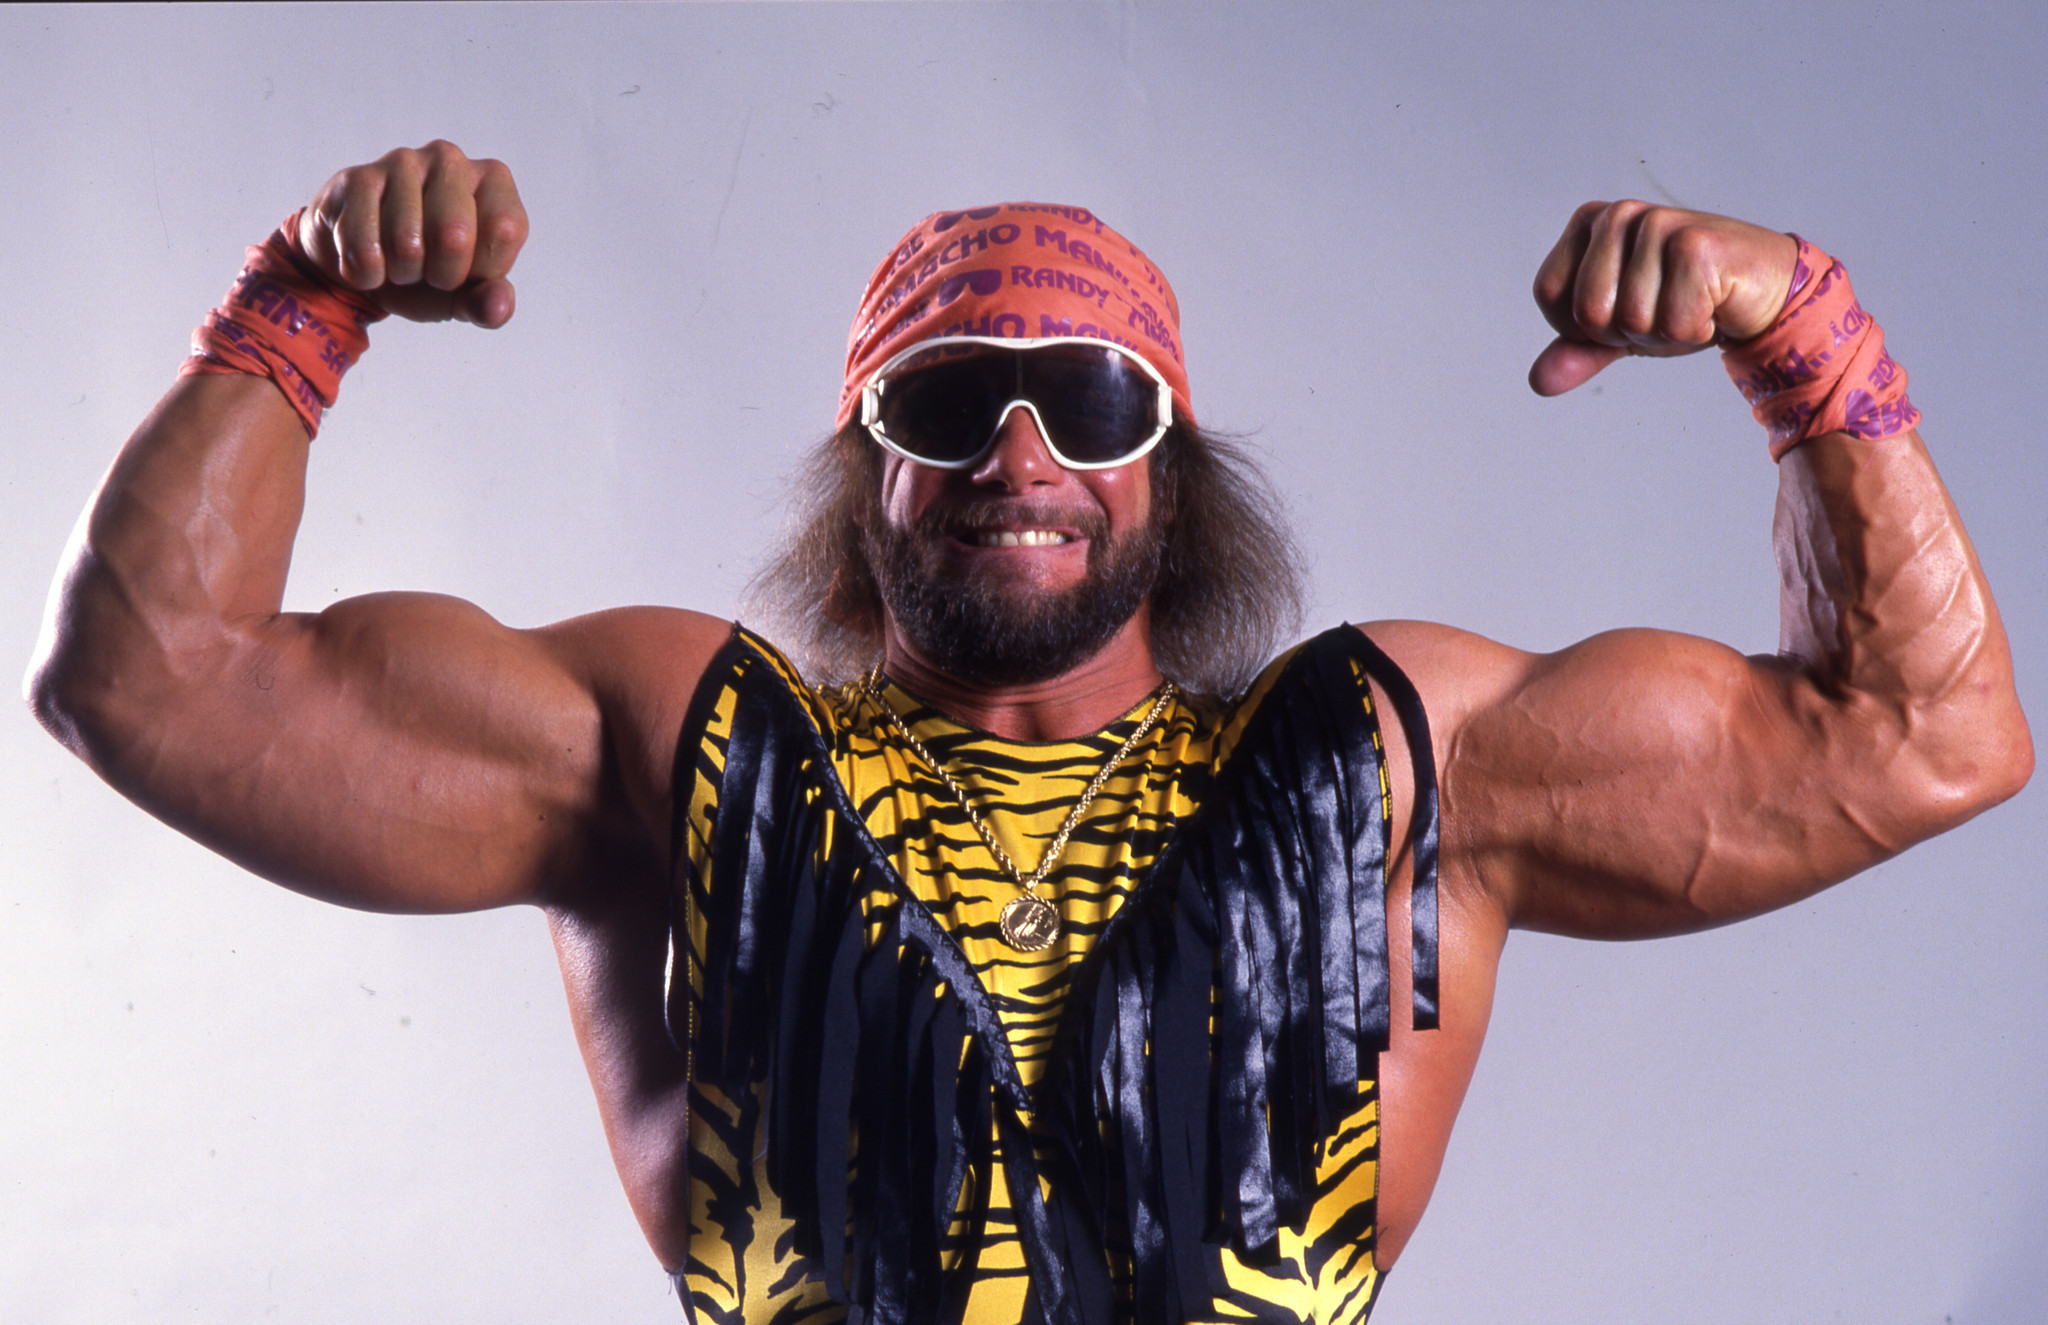 randy savage dating Stephanie bellars aka gorgeous george, with randy savage stephanie bellars, aka gorgeous george, tells a different story bellars was savage's girlfriend at the time, who also worked as his valet in wcw.